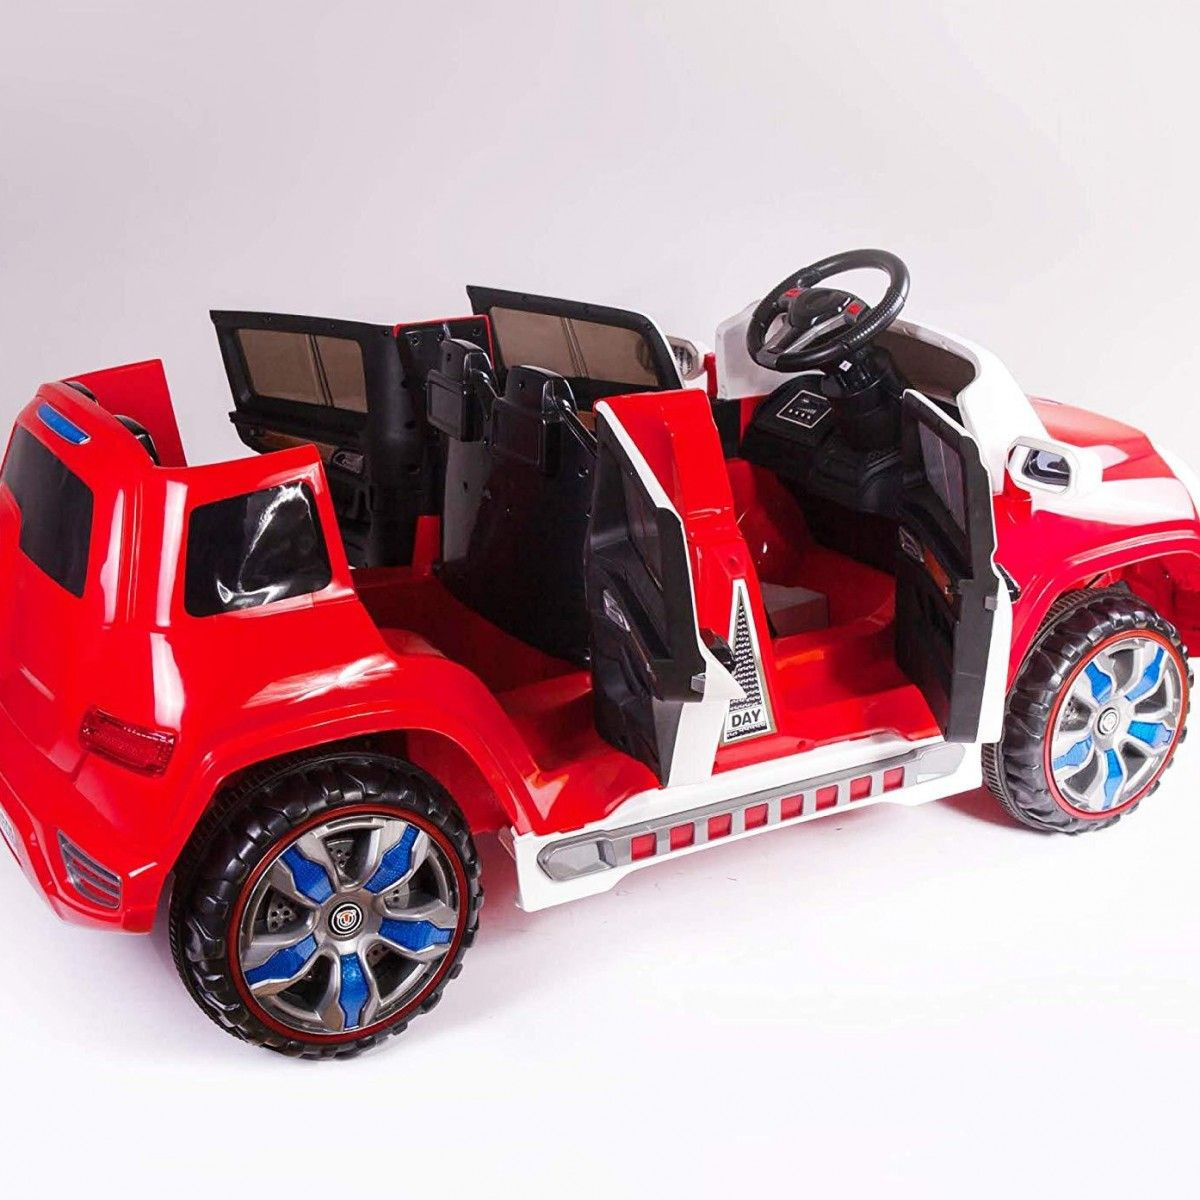 Fresh Electric Cars For Kids 4 Seater Toy Cars For Kids Kids Power Wheels Baby Driving Car